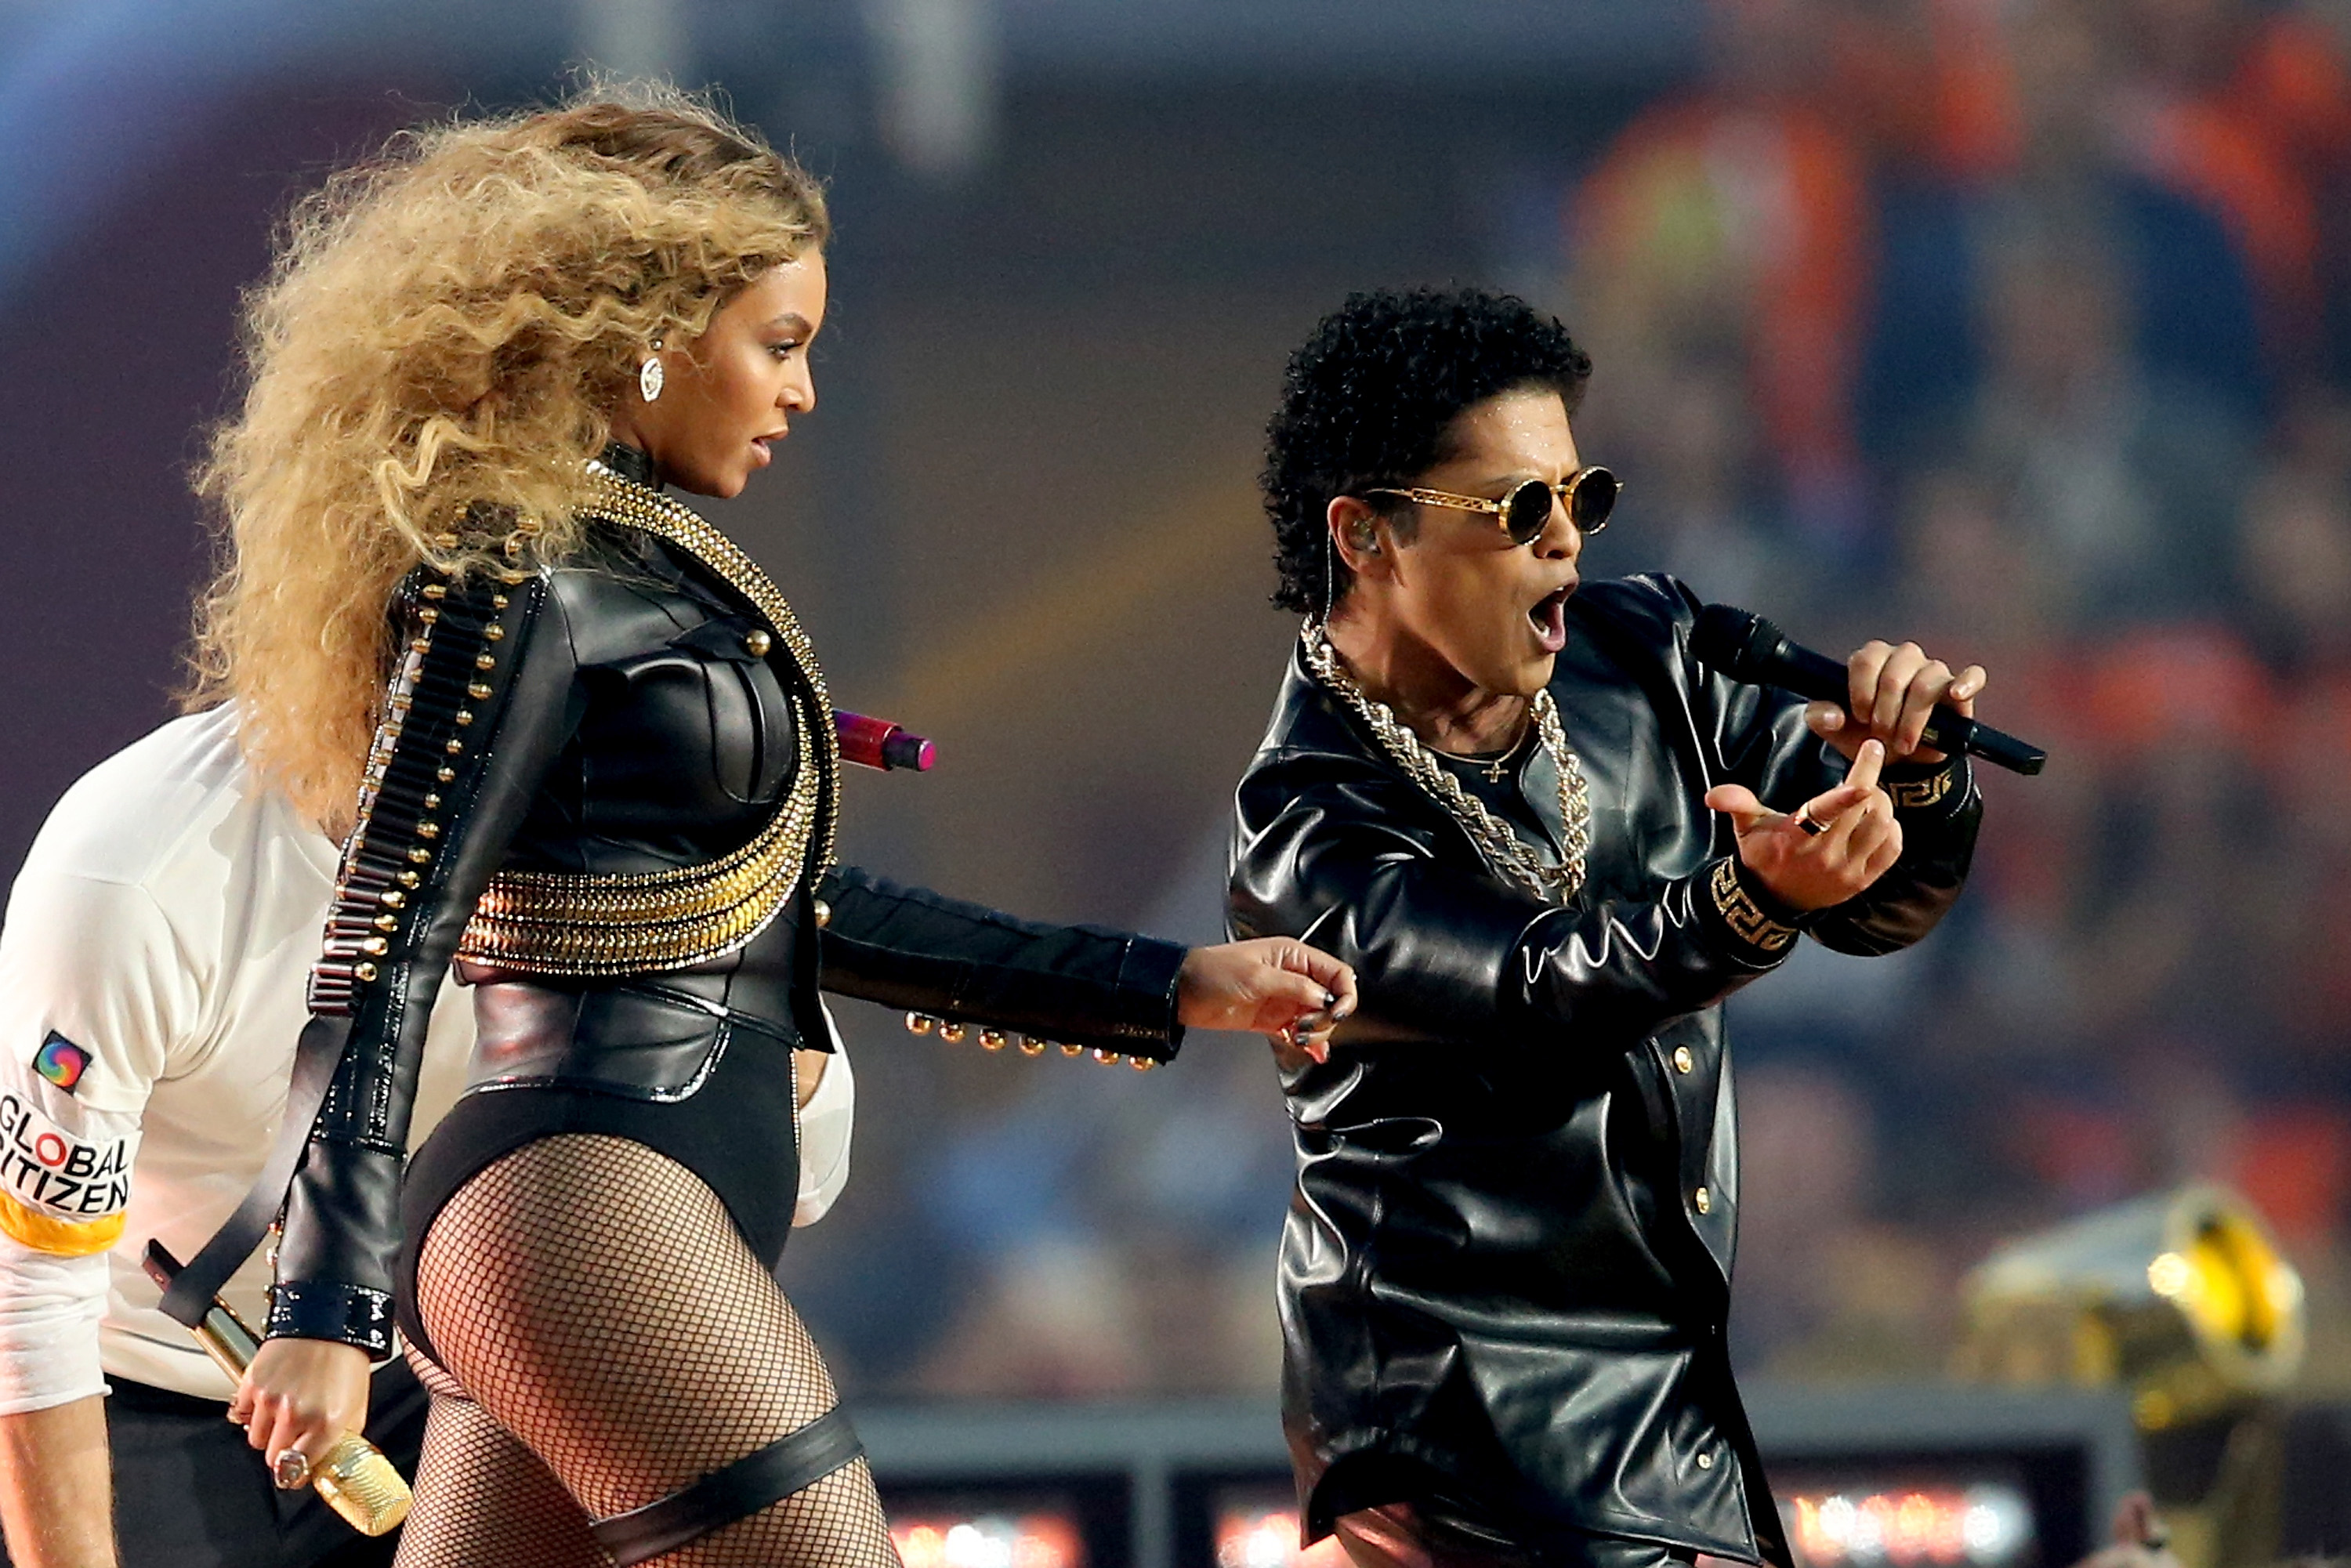 Beyonce  and Bruno Mars perform during the Pepsi Super Bowl 50 Halftime Show at Levi's Stadium on Feb. 7, 2016 in Santa Clara, Calif.